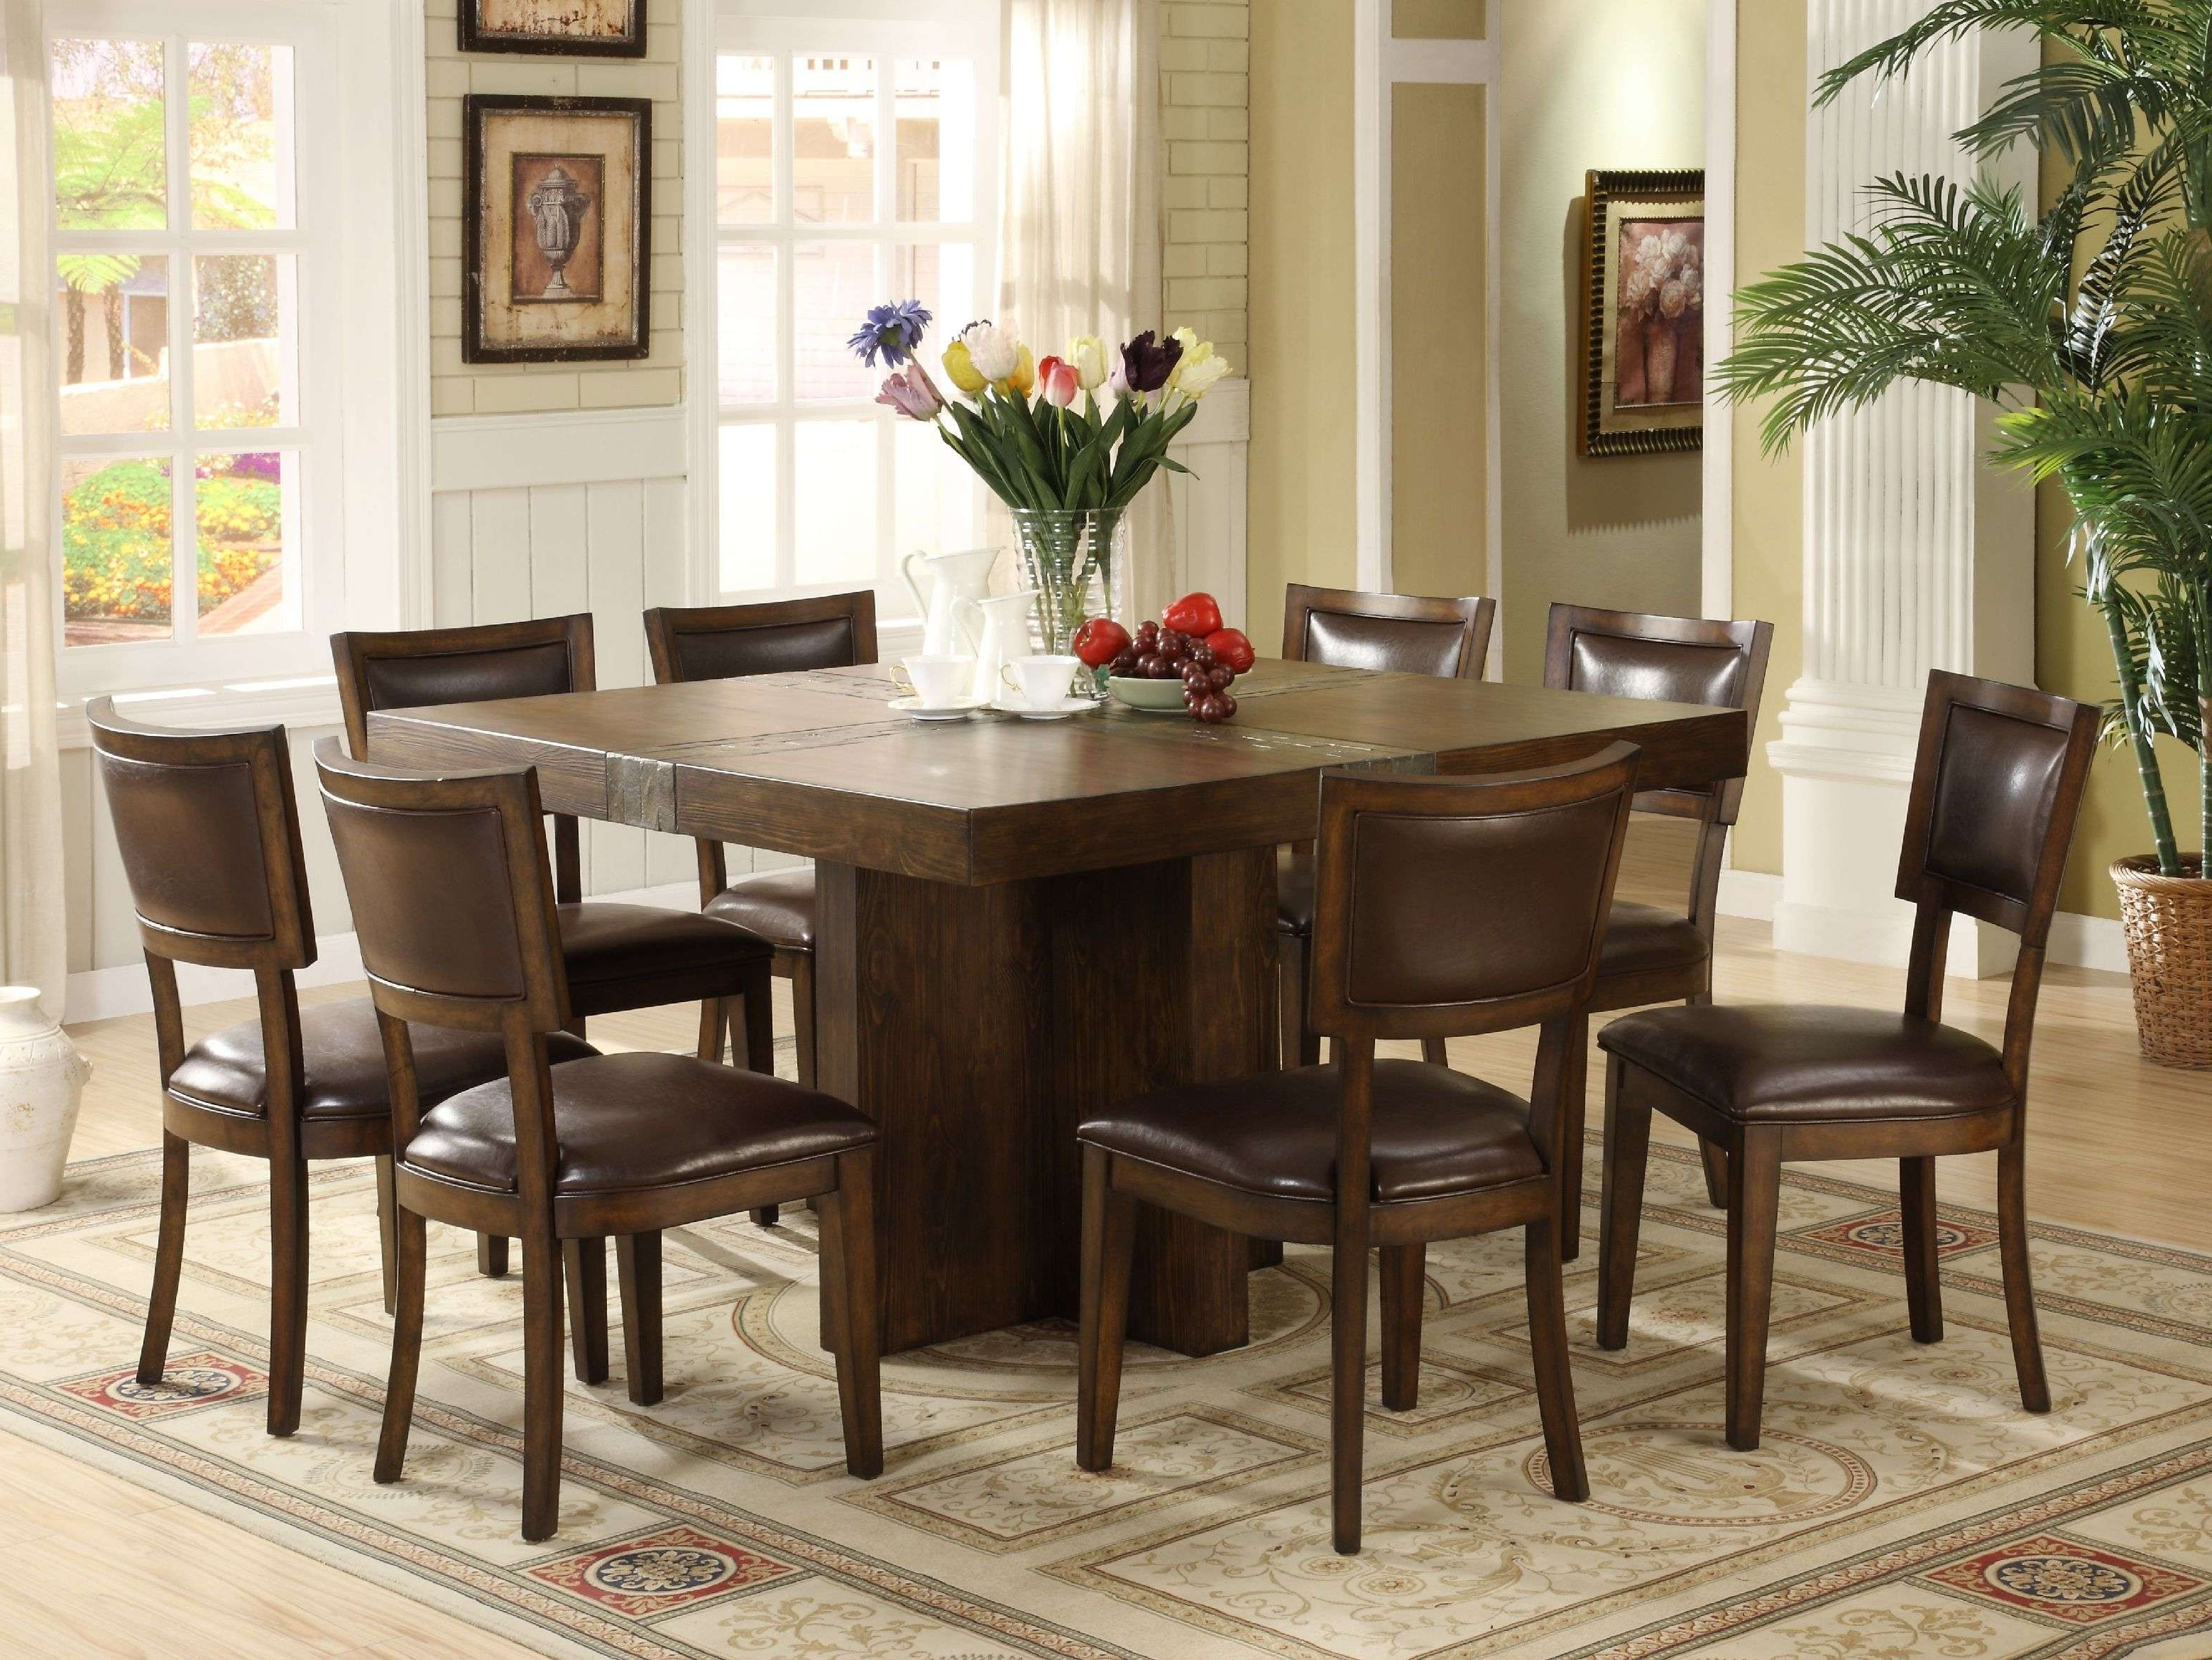 10 Seater Dining Table And Chairs Beautiful Best 8 Seater Dining Within Fashionable 10 Seater Dining Tables And Chairs (Gallery 5 of 25)